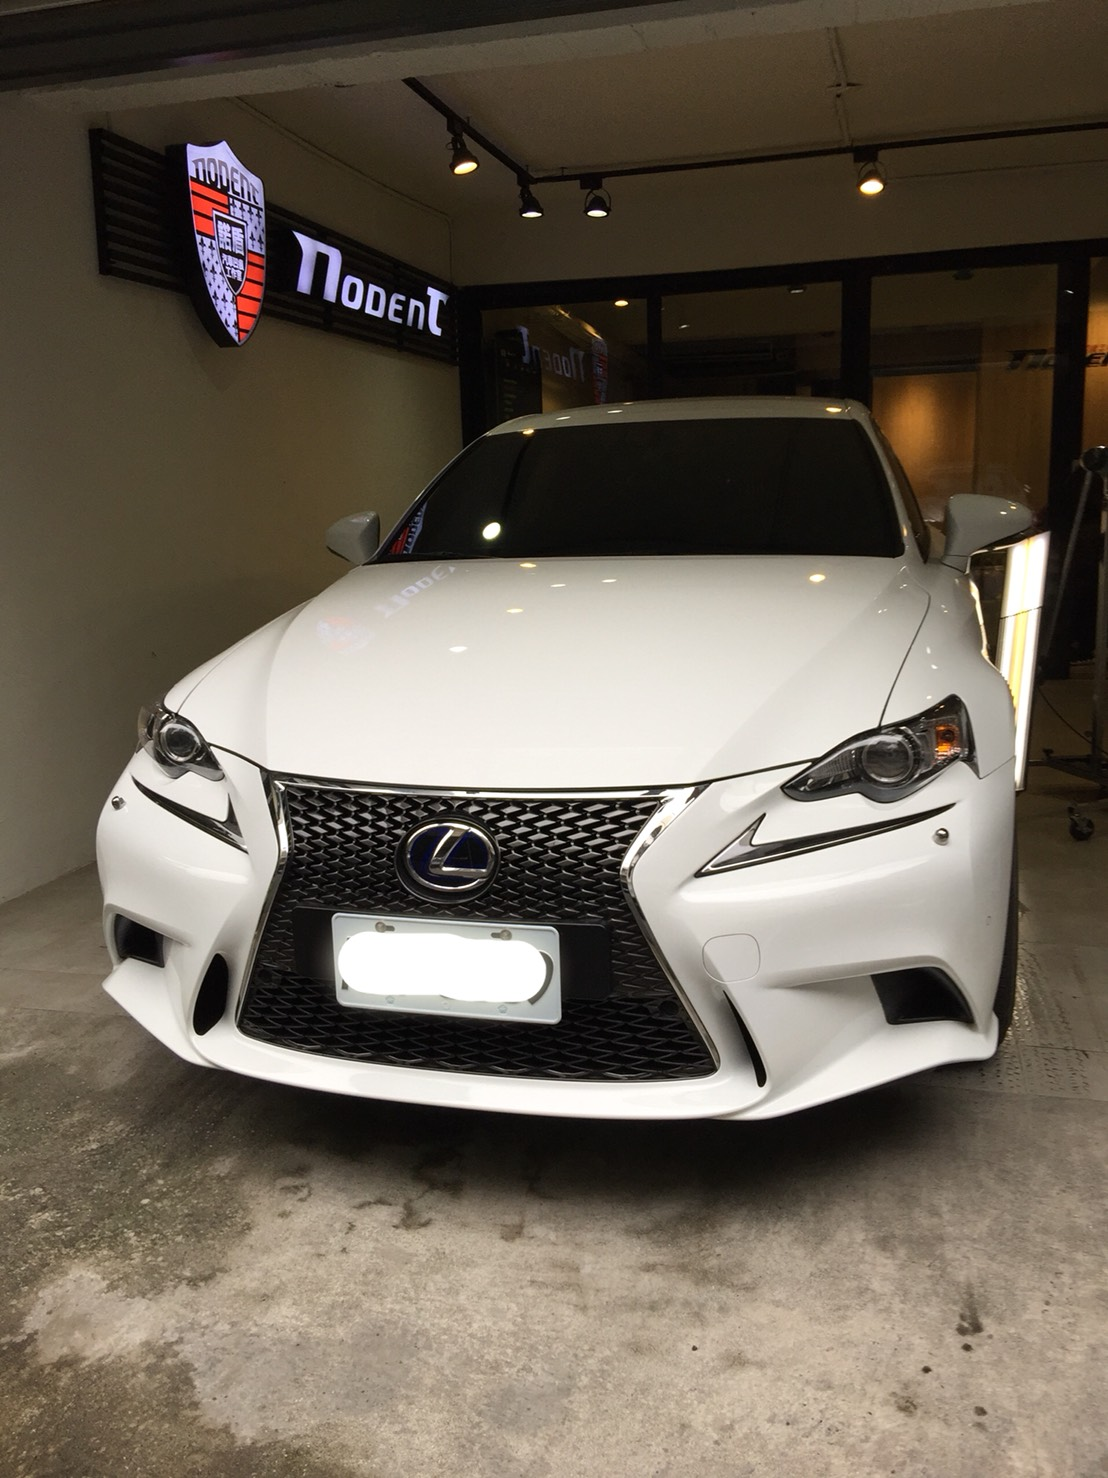 Lexus Is 300h 凹痕修復